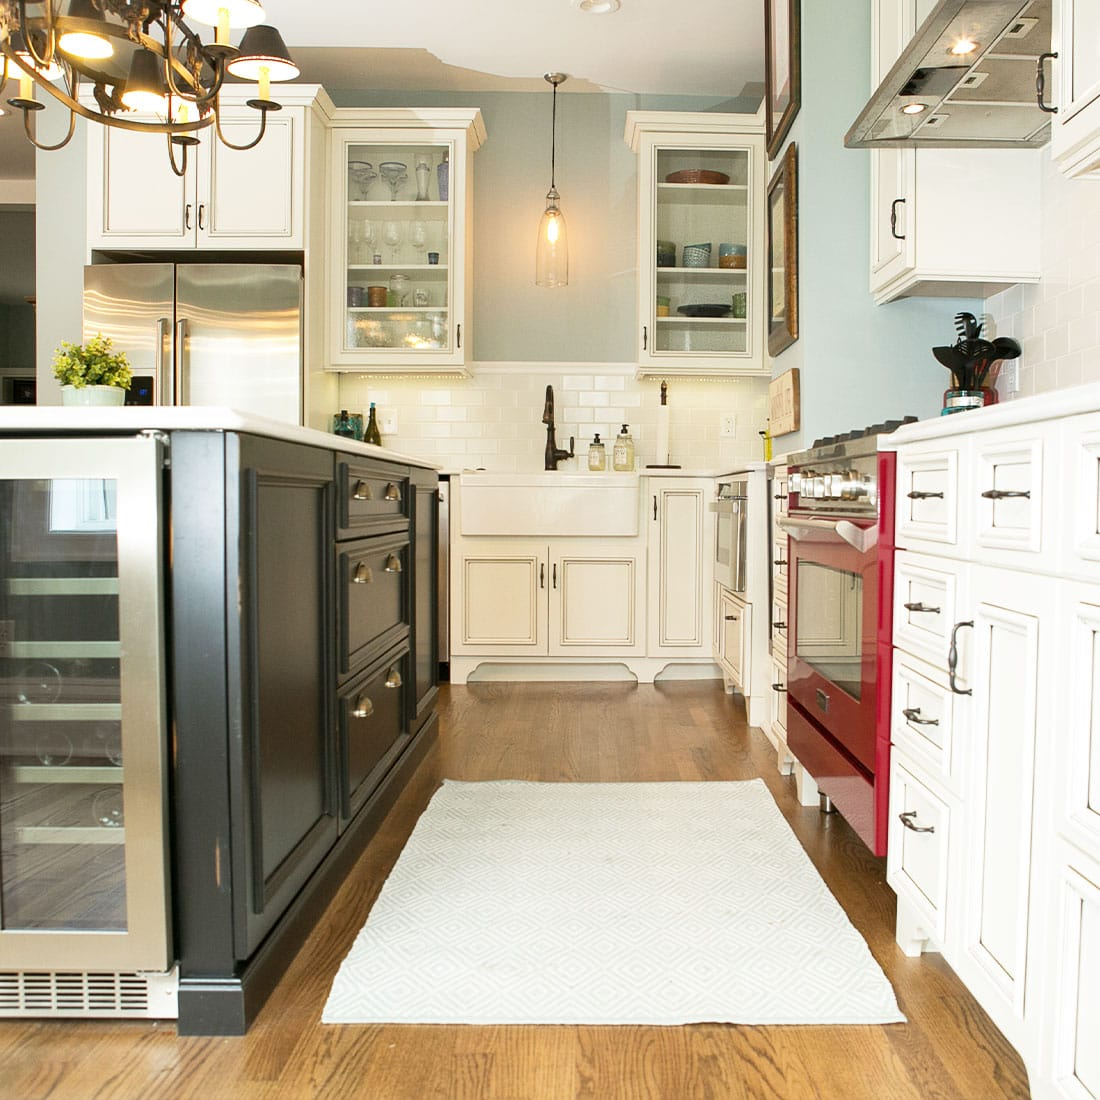 Contrasting island in white kitchen with red oven in renovated kitchen